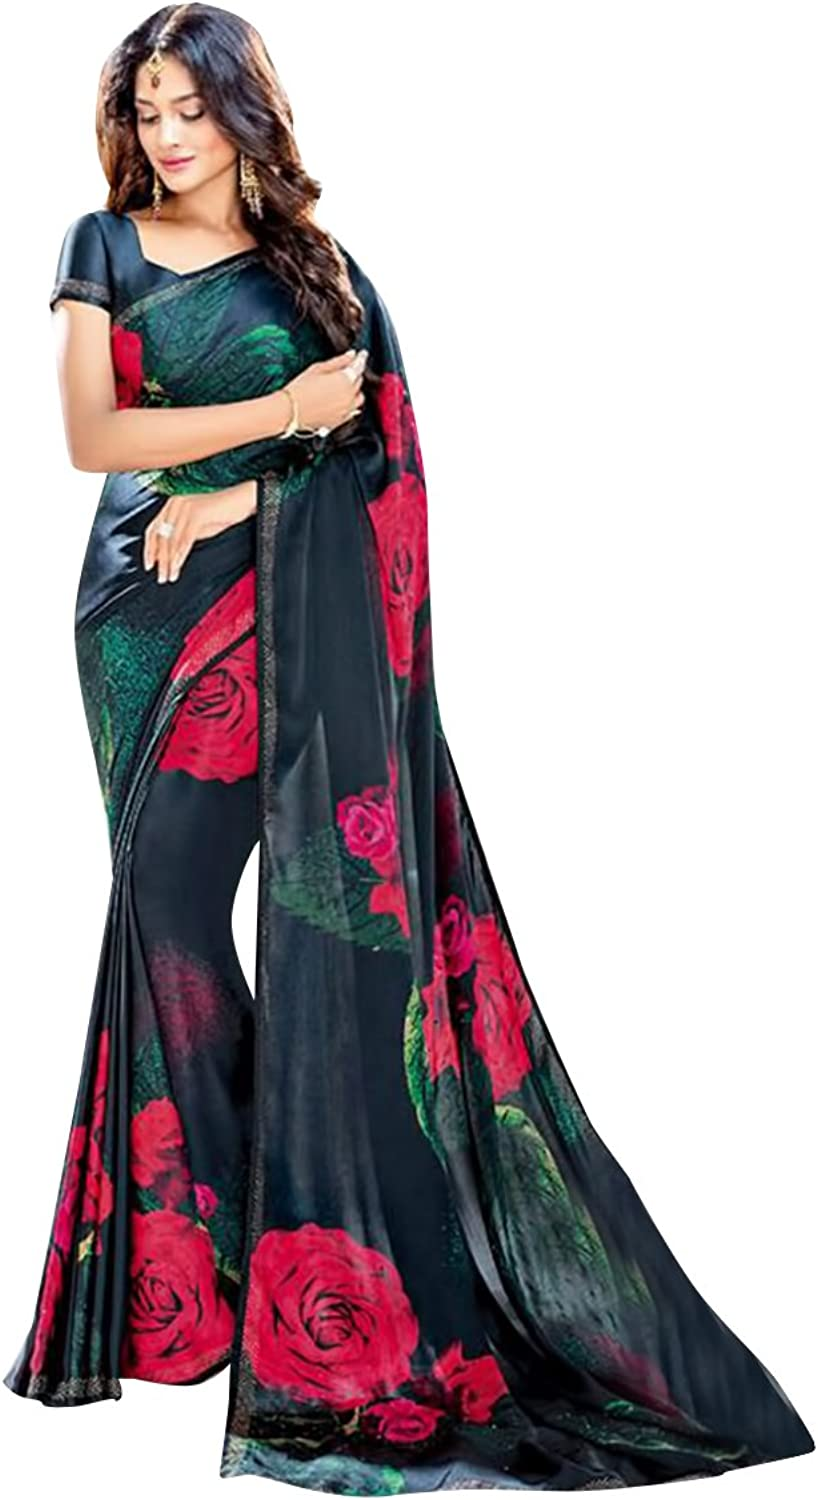 Bollywood Satin Swarovski Work Saree Sari Blouse Wedding Ceremony Party Wear